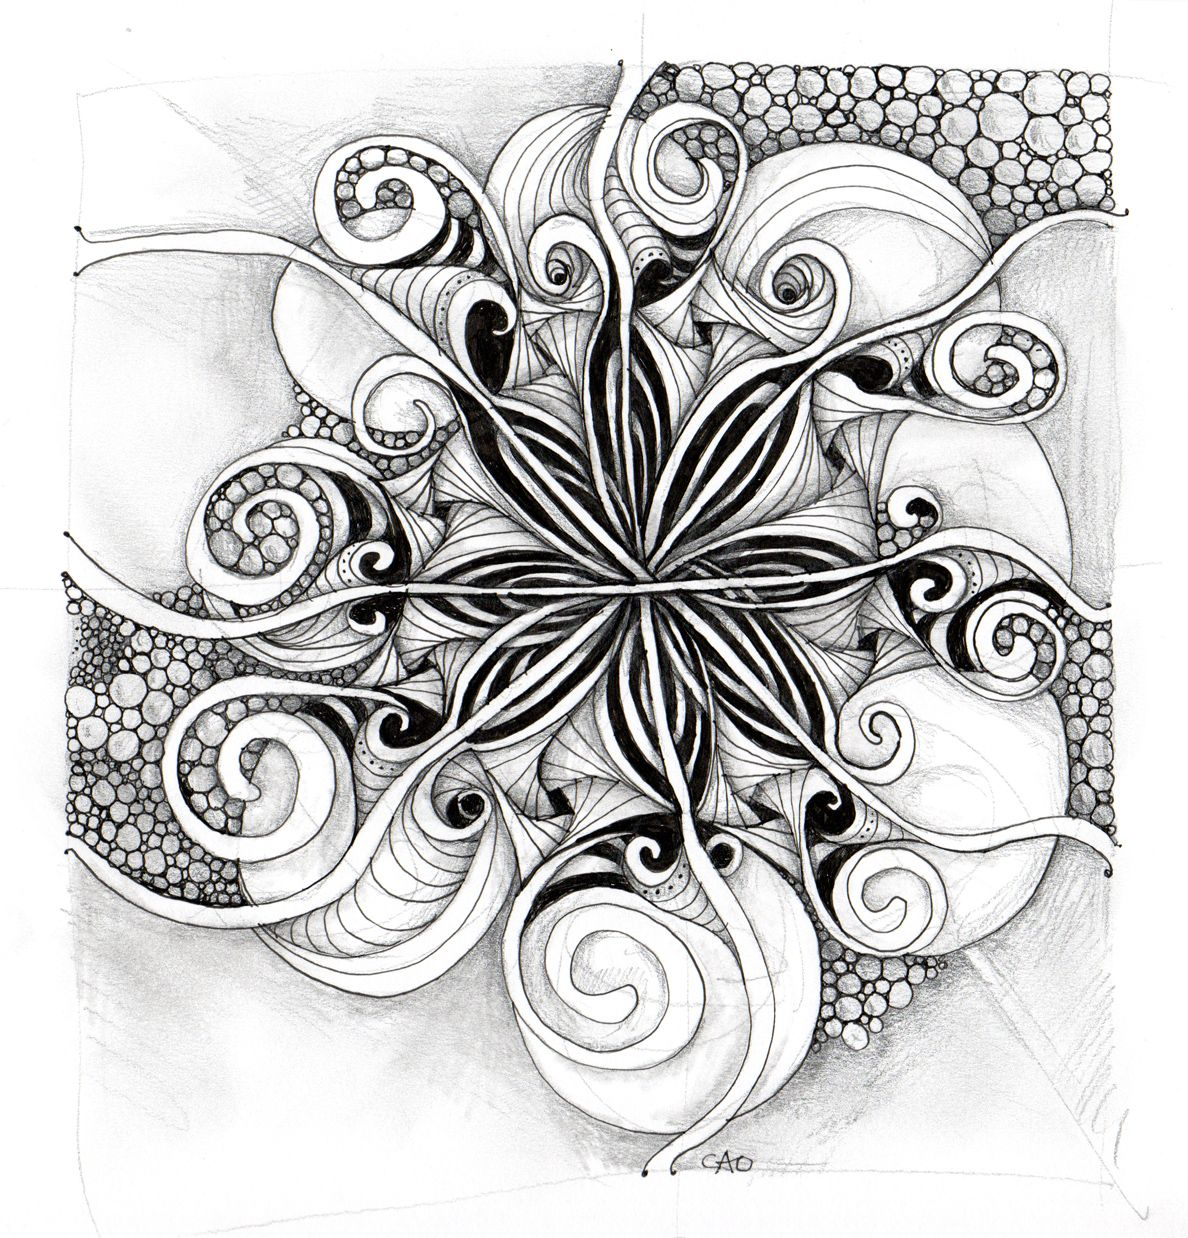 ~ CZT Carole Ohl's work ~ Check out her blog Open Seed Arts